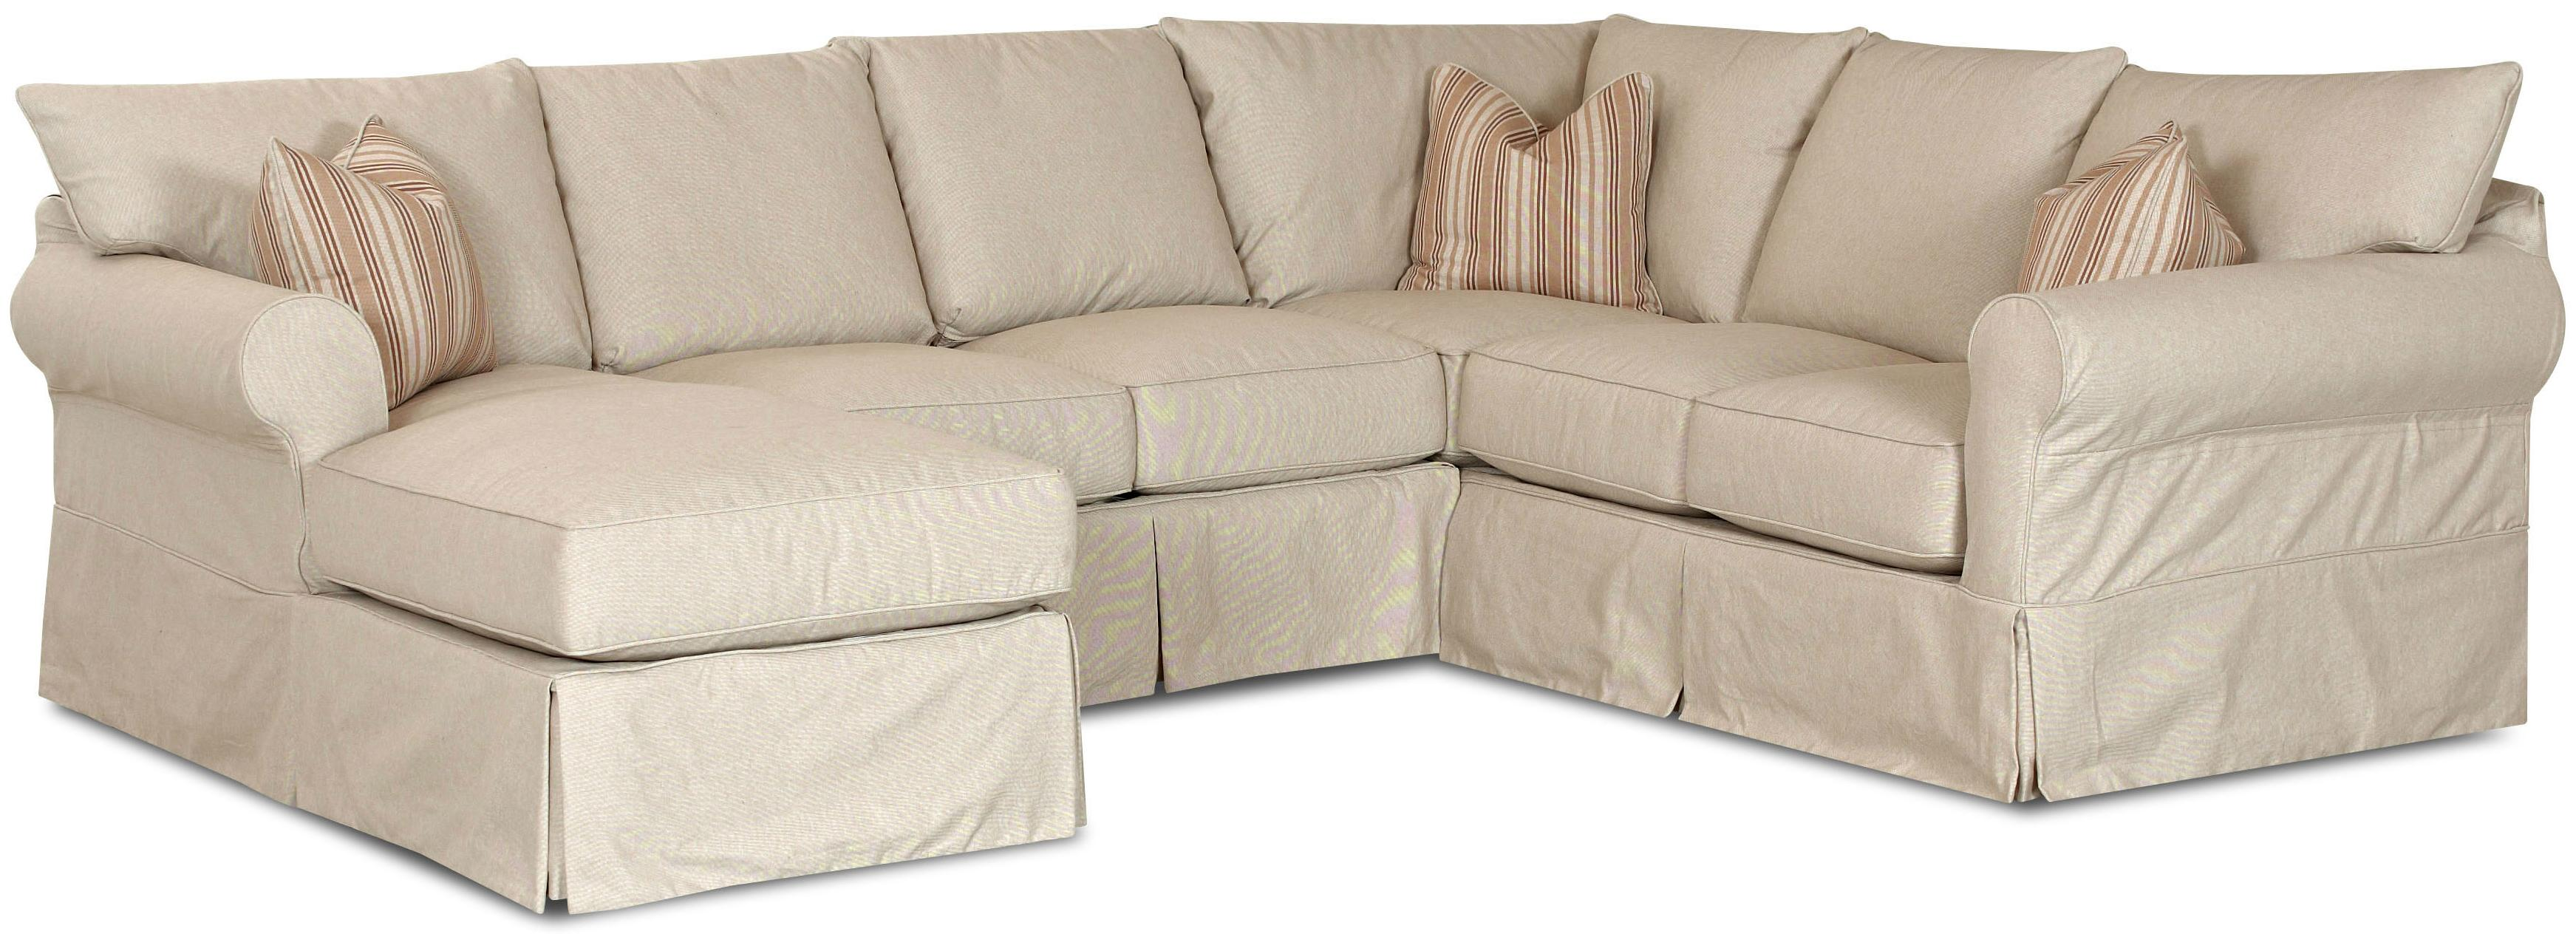 Slip Cover Sectional Sofa with Left Chaise by Klaussner  : products2Fklaussner2Fcolor2Fjennyd16100l20chase2Bals2Br20crns b0 from www.wolffurniture.com size 3486 x 1264 jpeg 441kB